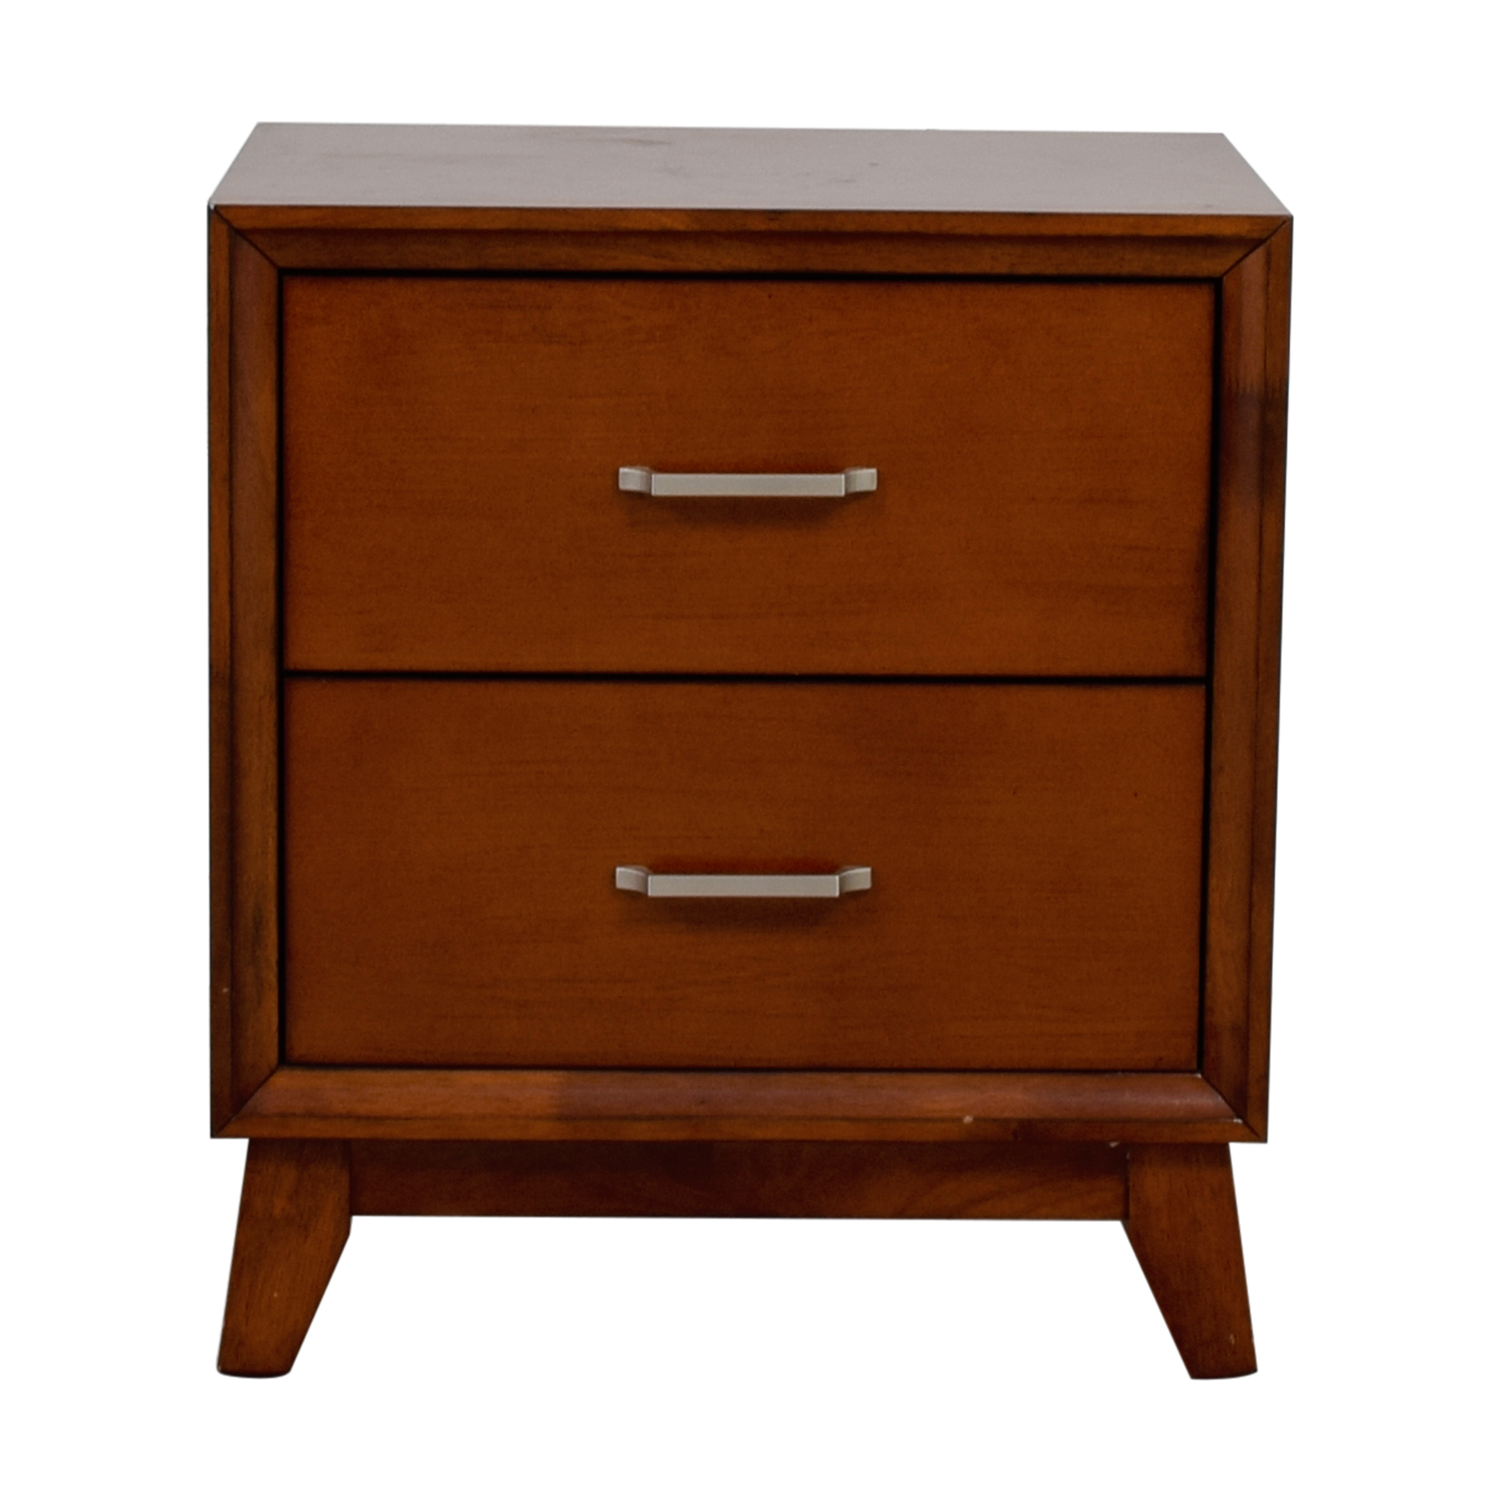 Home Elegance Home Elegance Soren Nightstand on sale